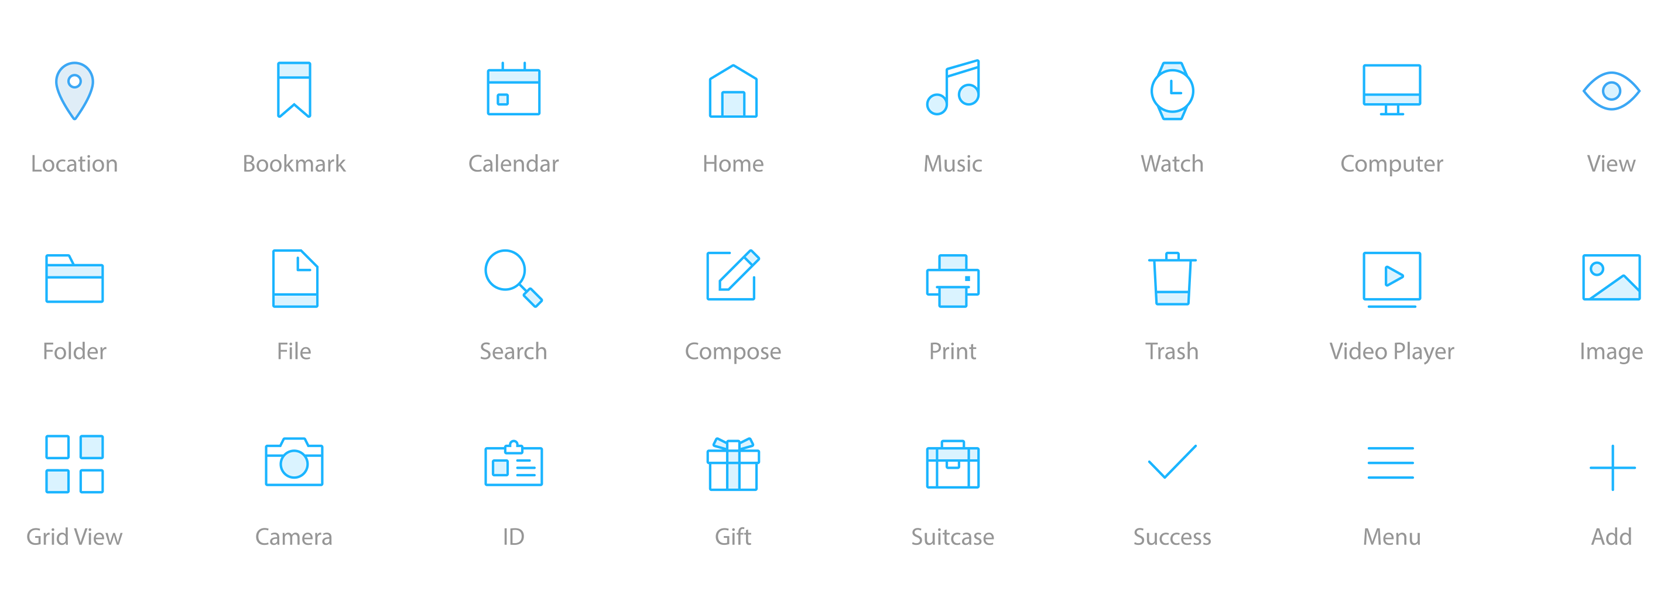 Icons in a user interface are instantly recognizable